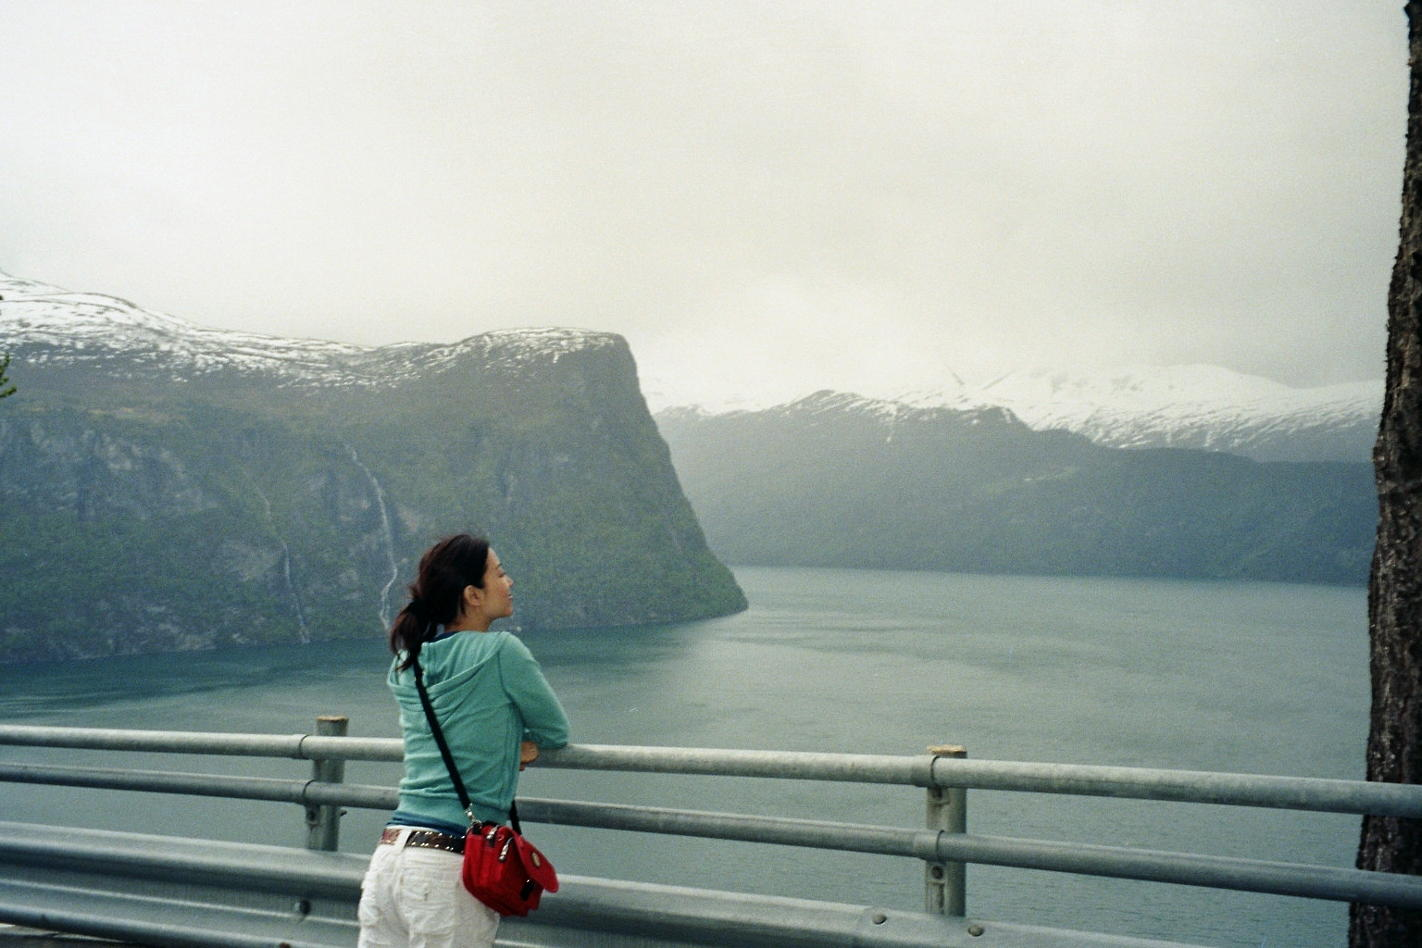 36) Geirangerfjord, Norway. This is one of the smaller fjords but certainly one of the most spectacular